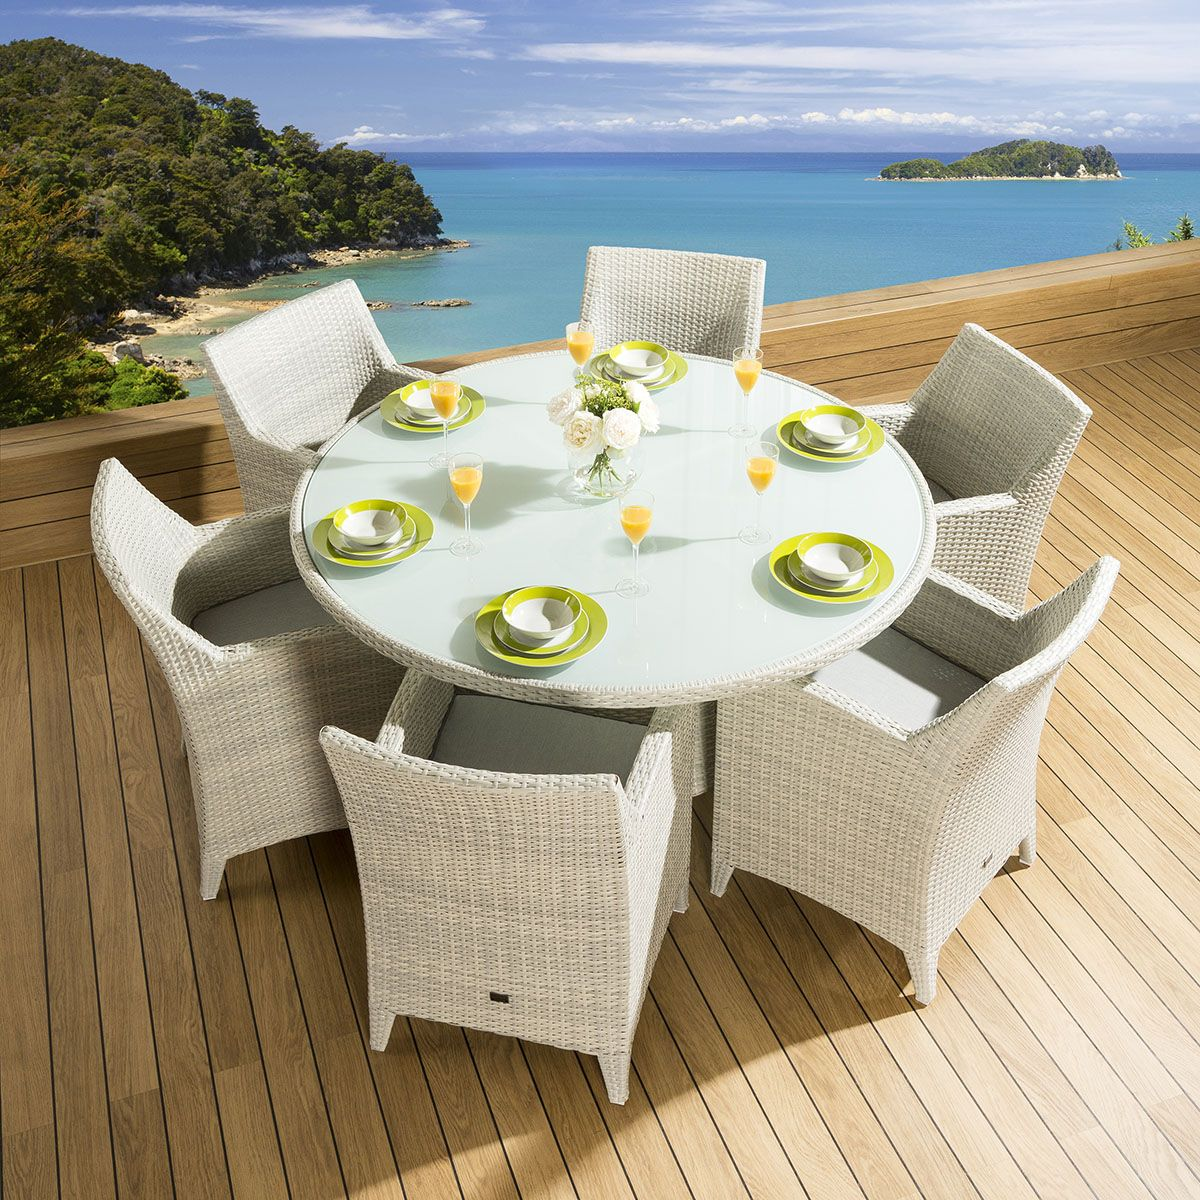 Rattan Garden 6 Person Dining Set Round Table Carver ...